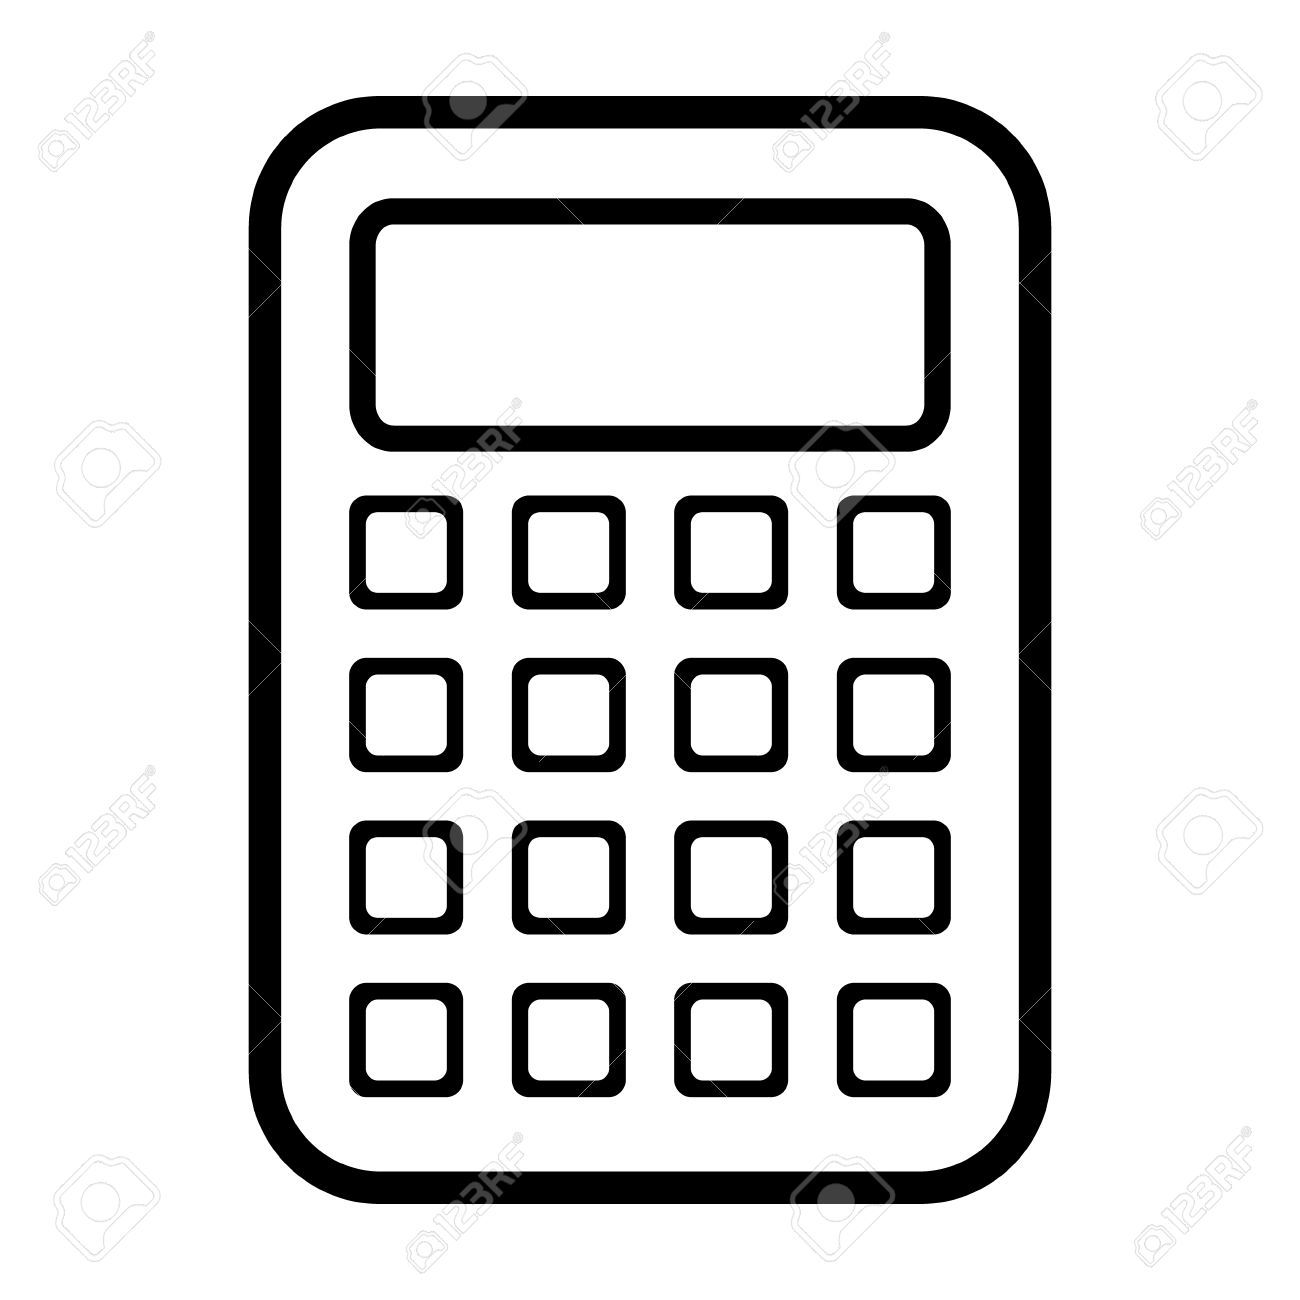 Calculator icon clipart png freeuse library Calculator icon » Clipart Portal png freeuse library